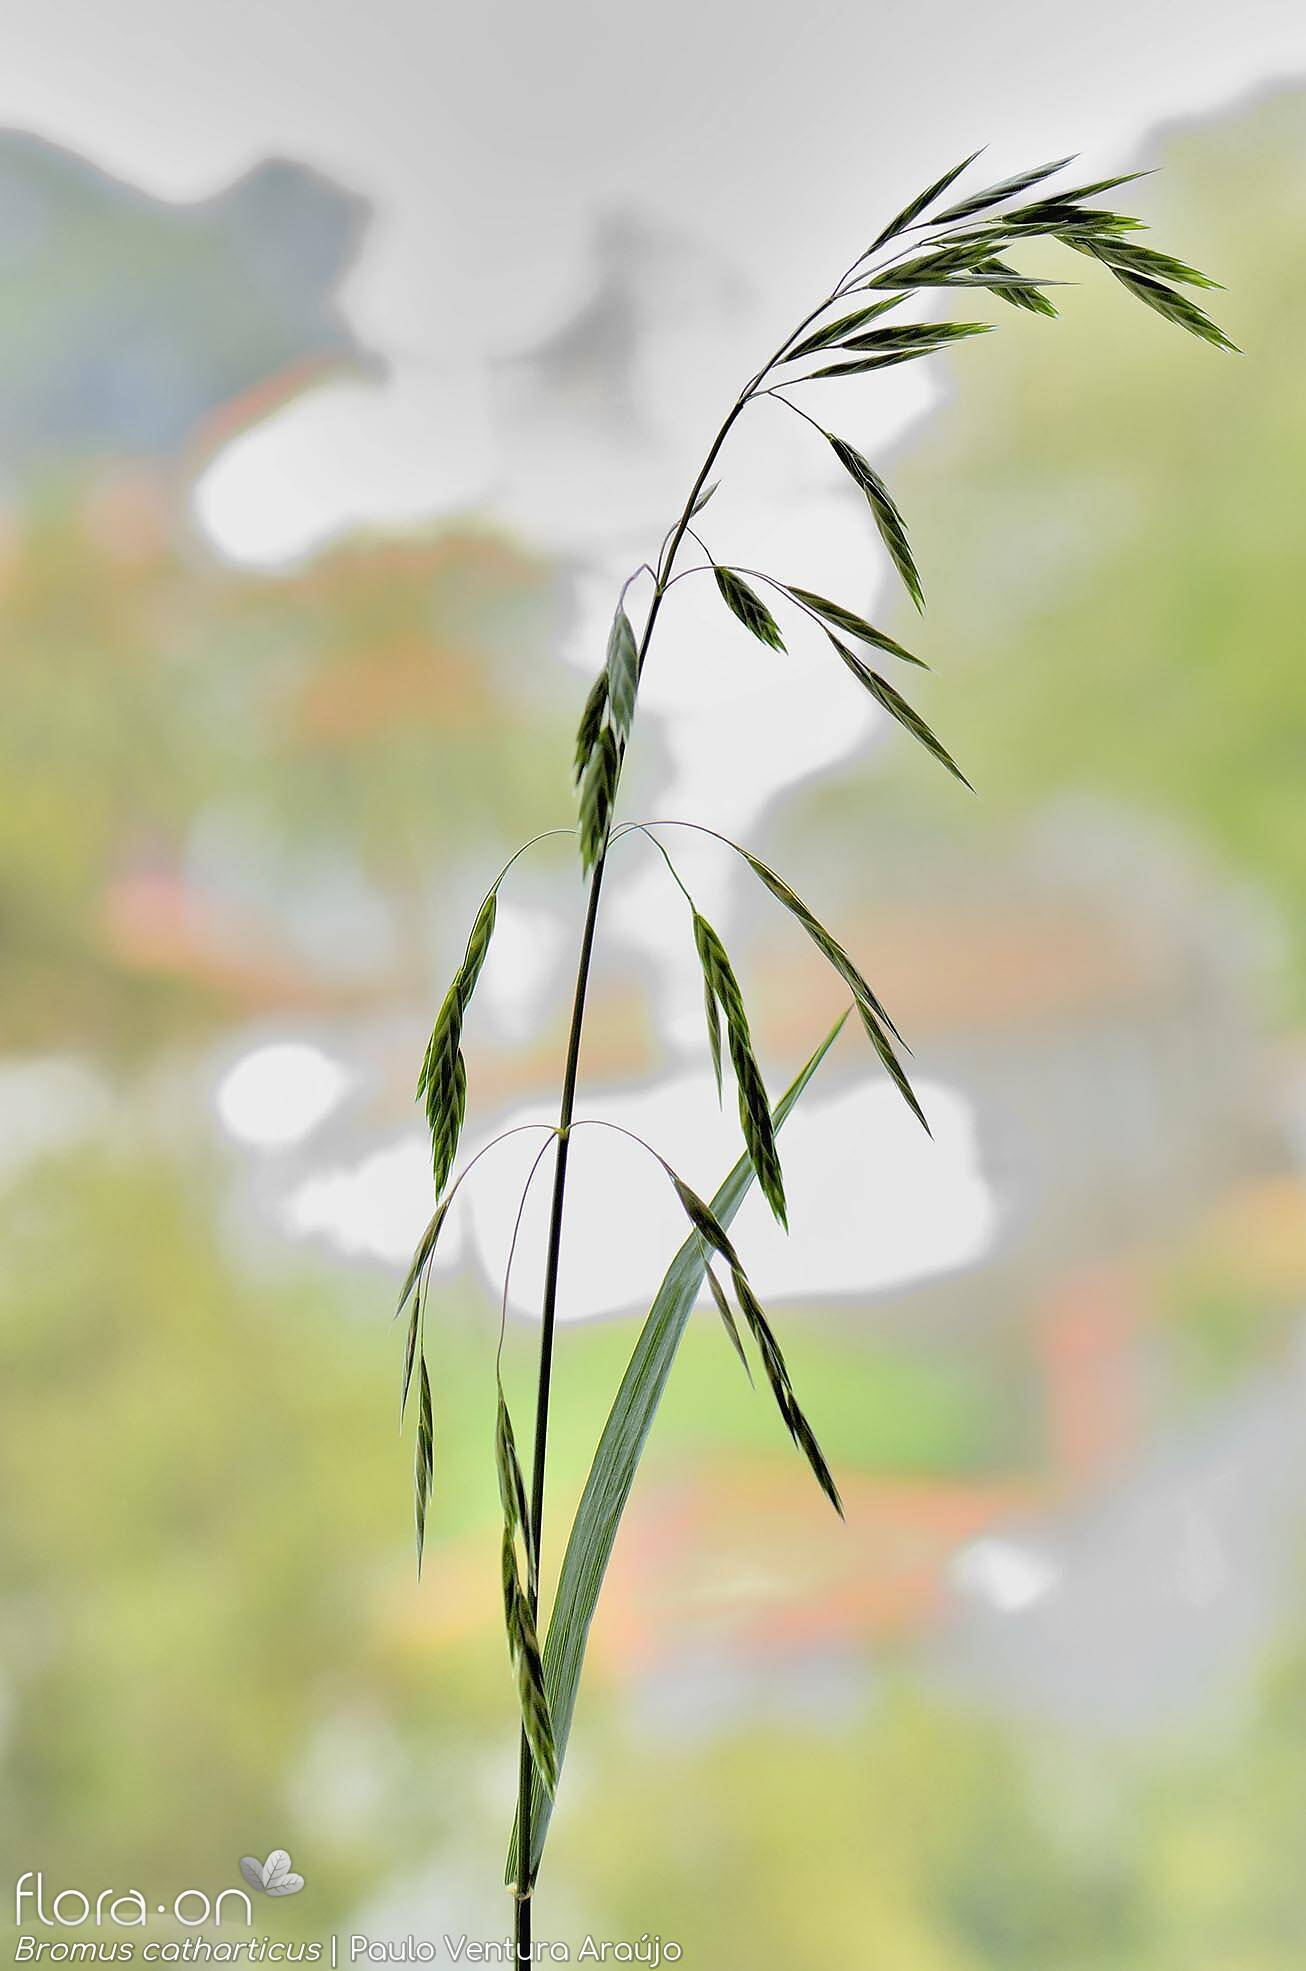 Bromus catharticus - Flor (geral) | Paulo Ventura Araújo; CC BY-NC 4.0